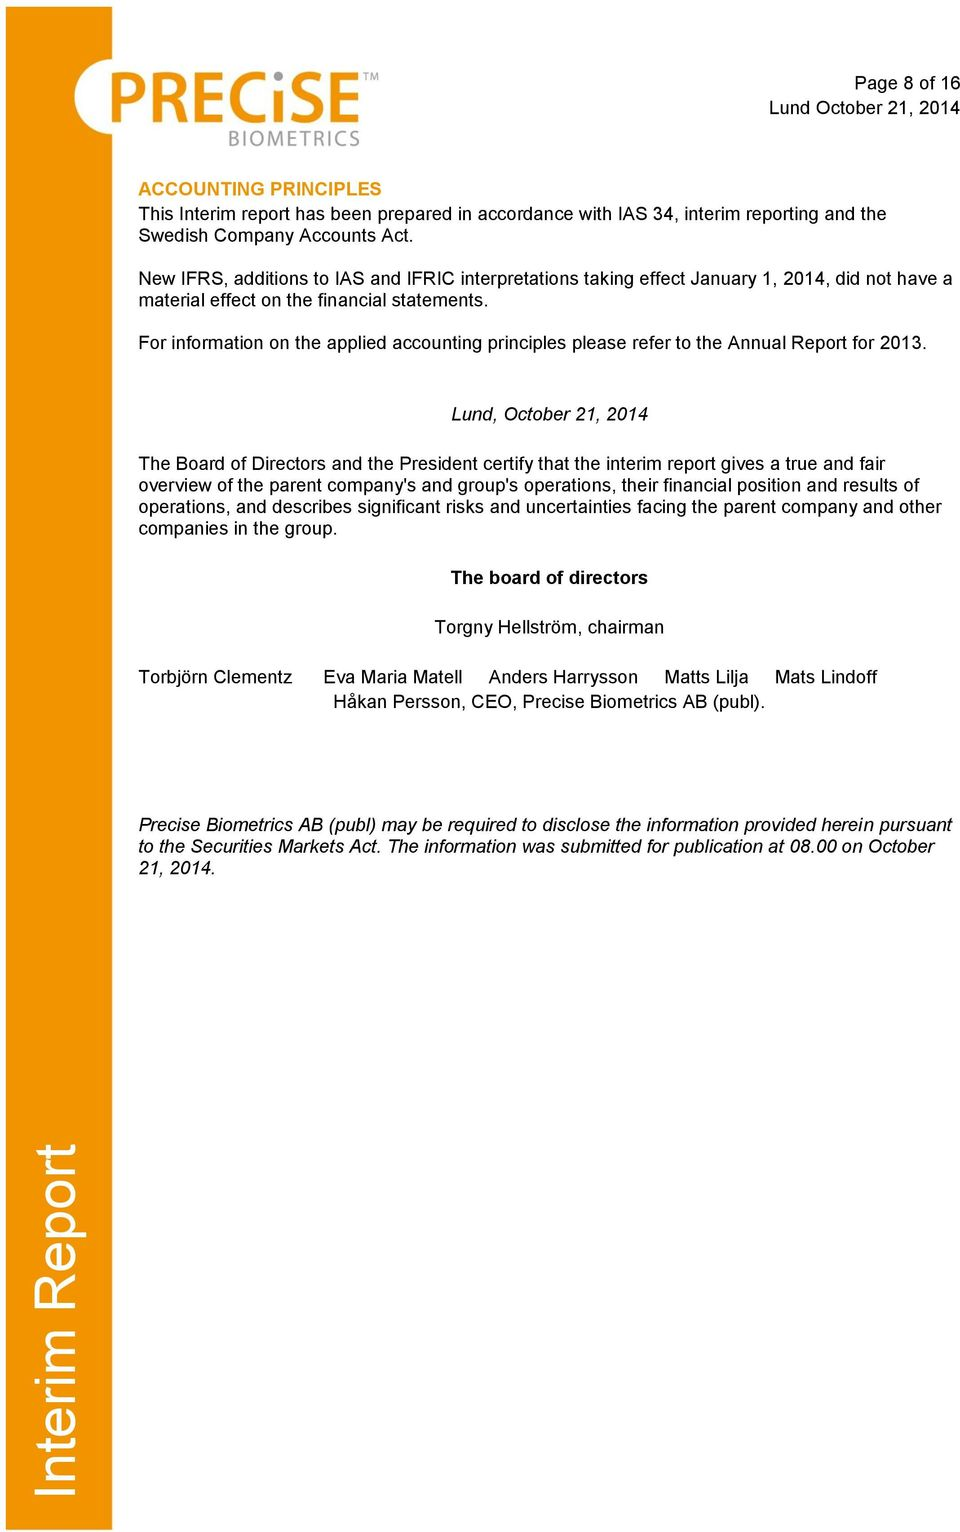 For information on the applied accounting principles please refer to the Annual Report for 2013.